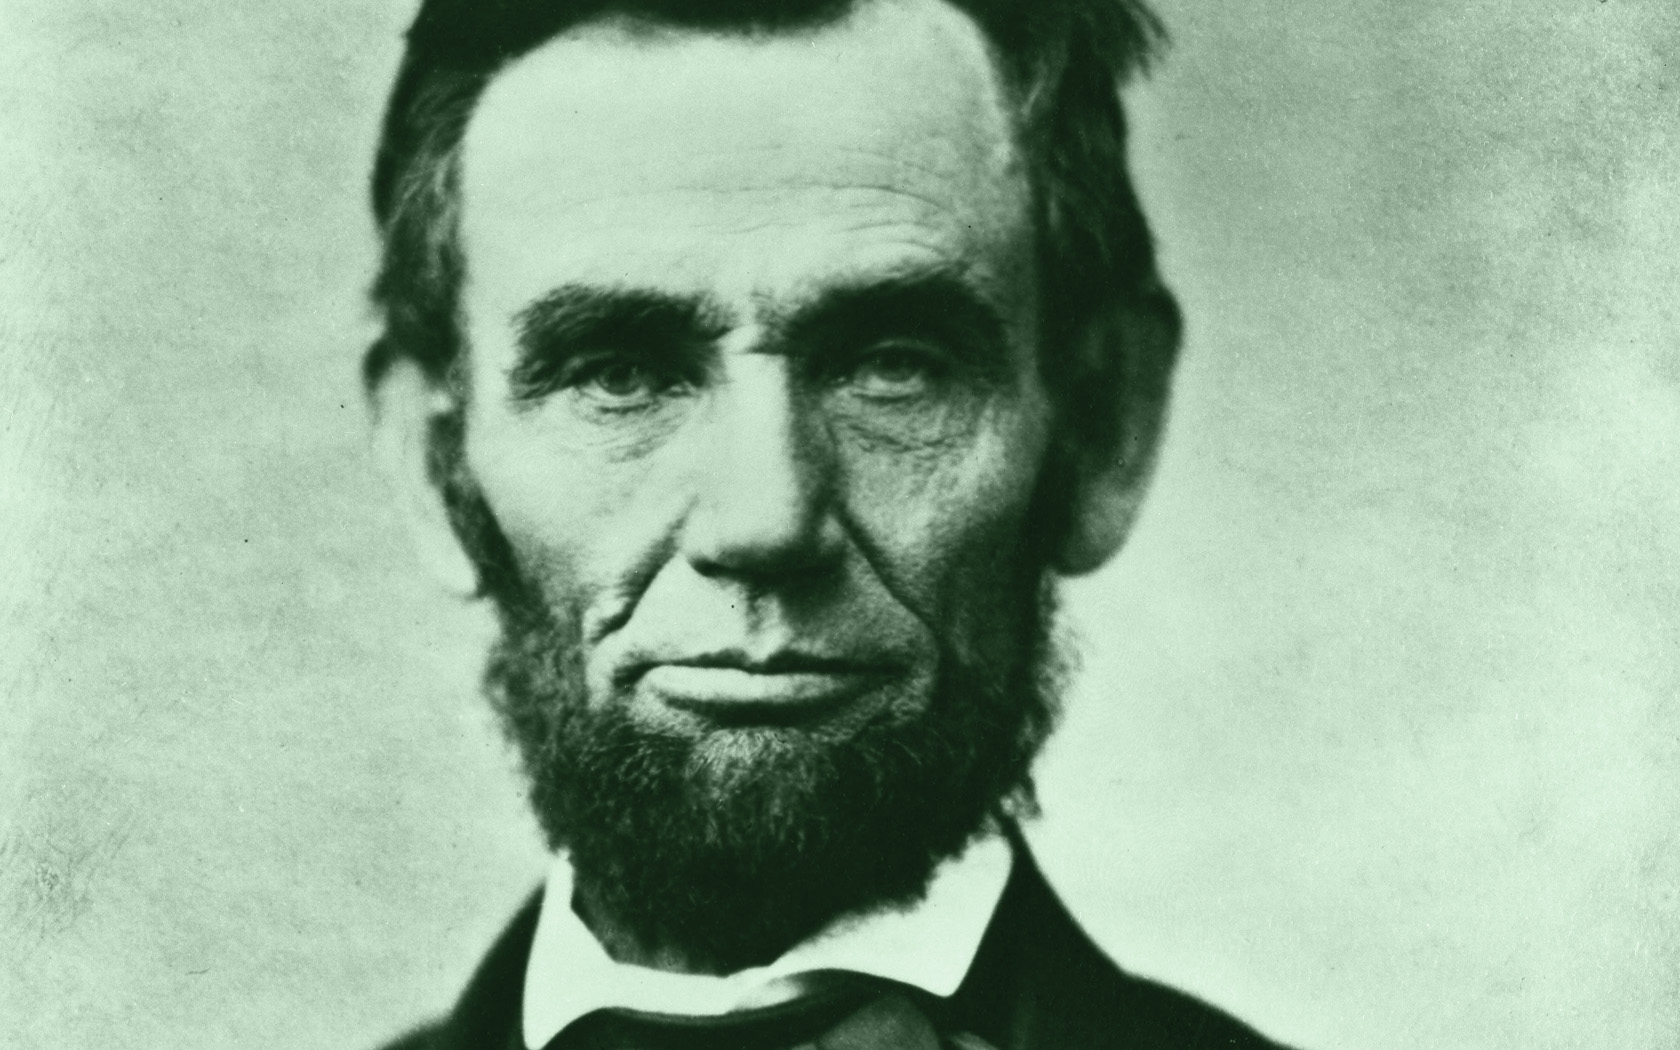 Download Wallpapers Download 1600x1200 abraham lincoln 1600x1200